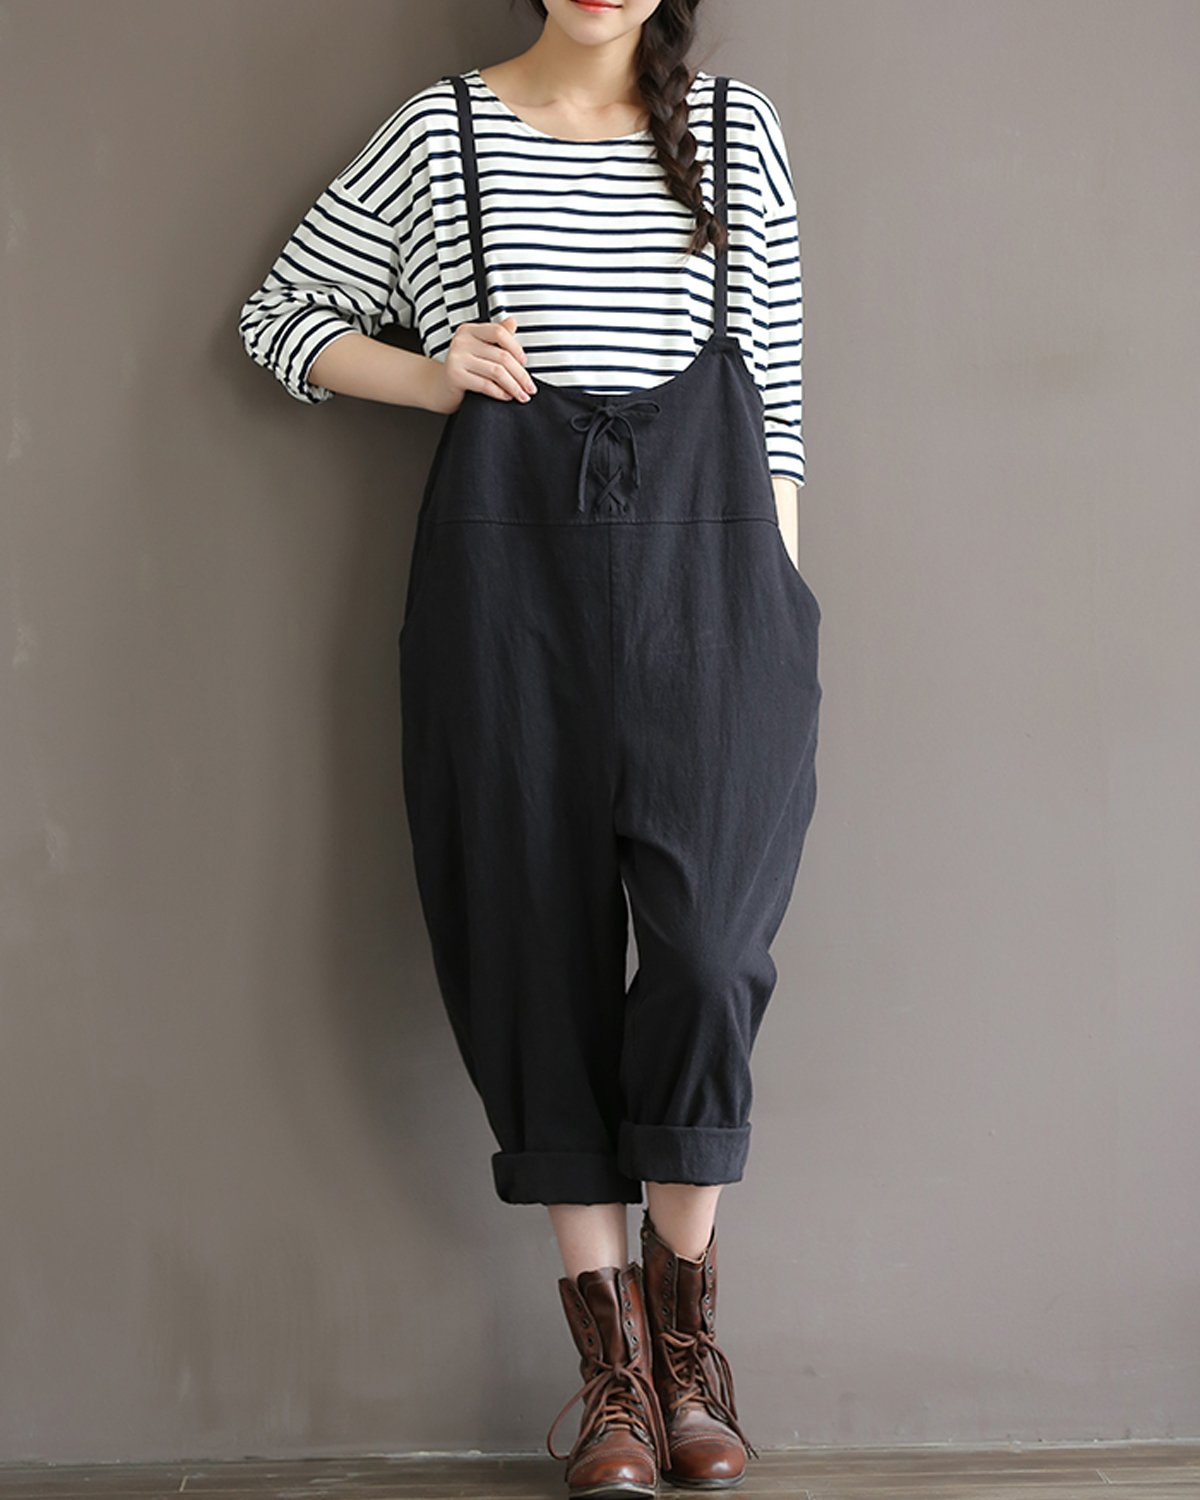 GZBQ Overalls for Women Casual Cotton Jumpsuit Plus Size Baggy Bib Wide Leg Overalls Pants Black 2XL by GZBQ (Image #2)